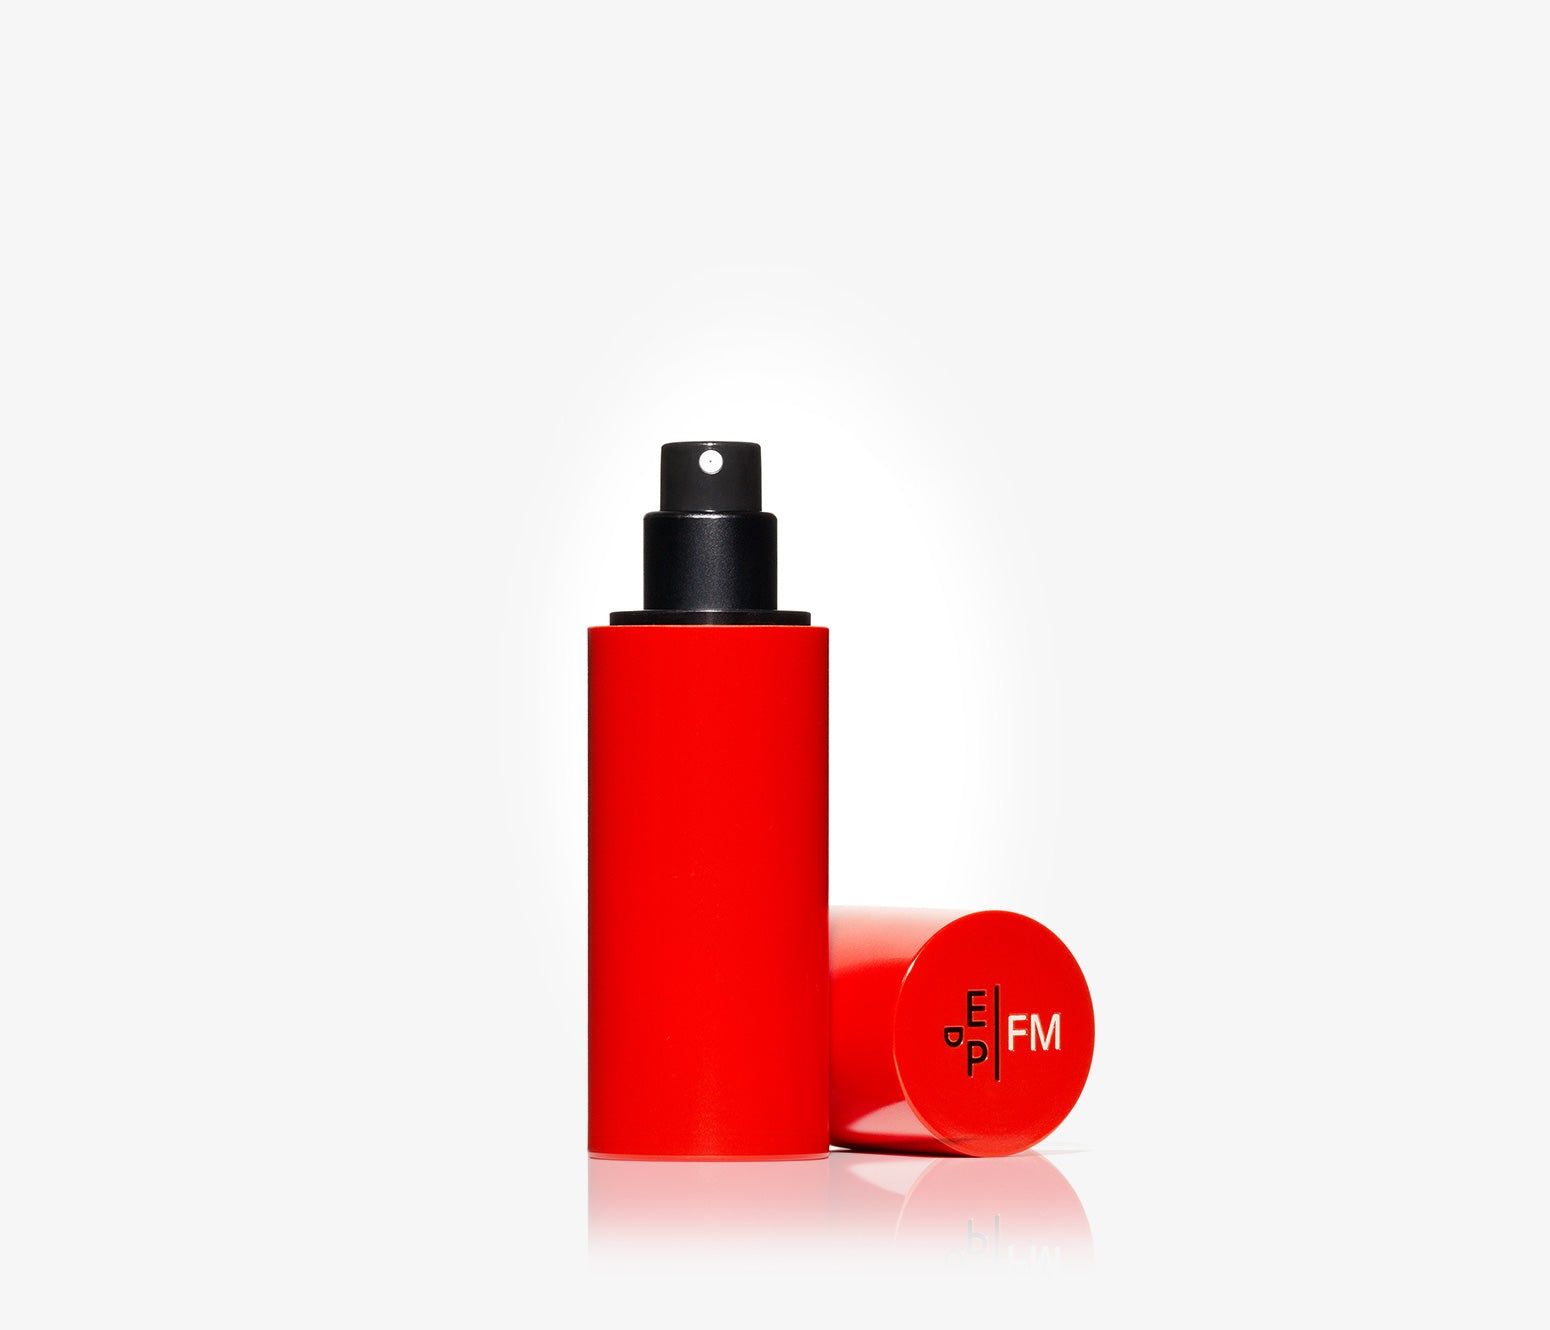 Frederic Malle - Signature Travel Spray Case - Red - FKO001 - Product Image - Fragrance - Les Senteurs